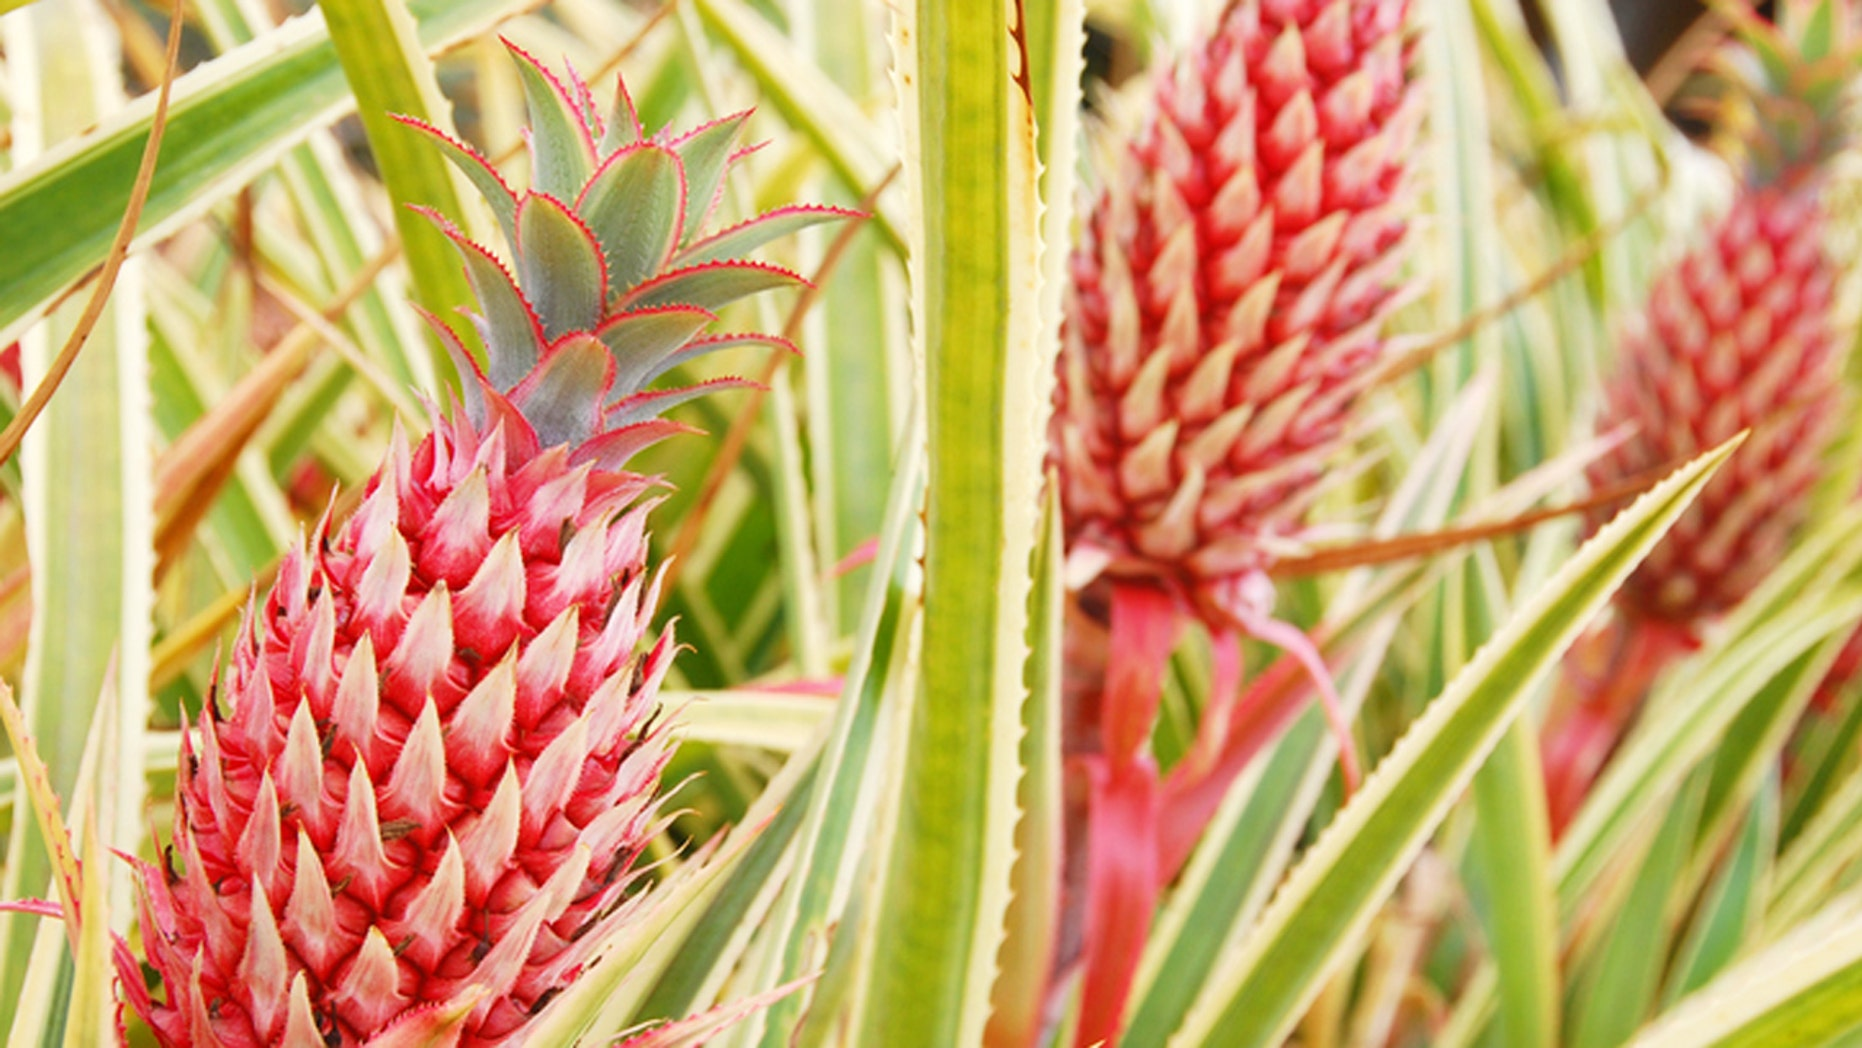 Would you eat a pink pineapple?